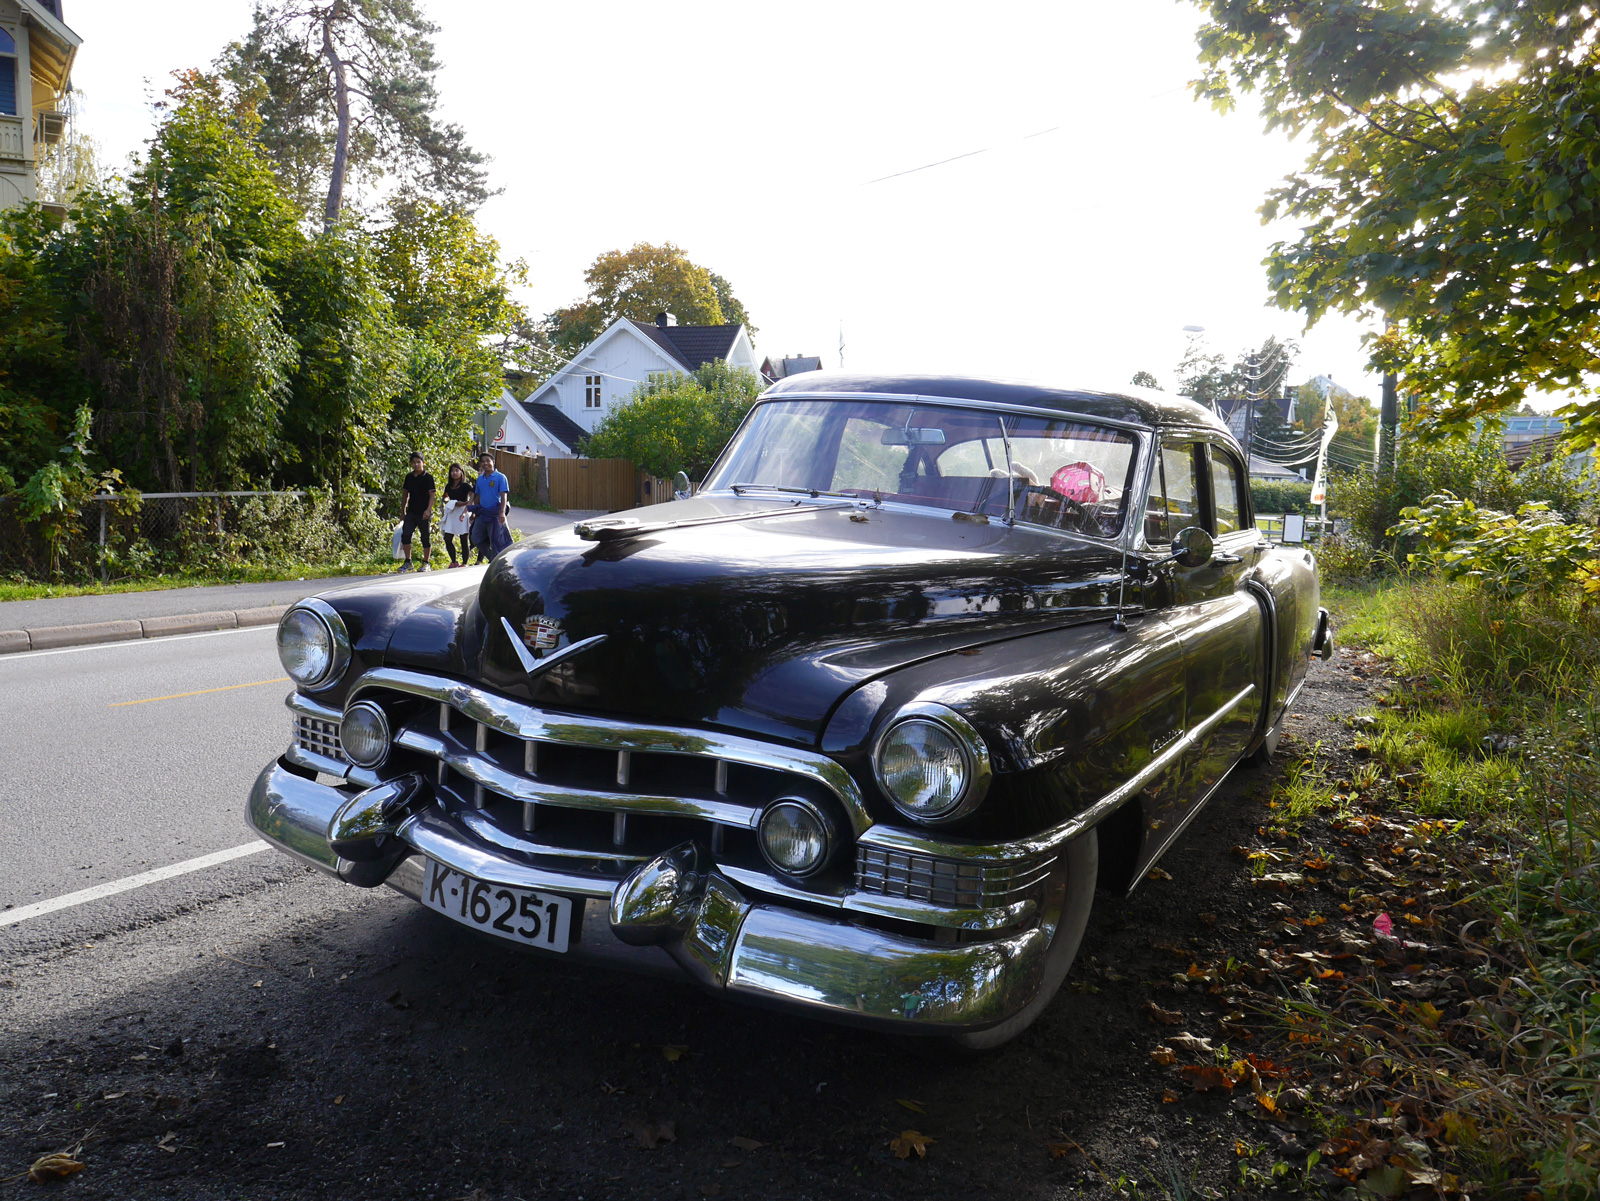 1951 Cadillac Series 62 Sedan Haryley Earl classic car Oslo Norway